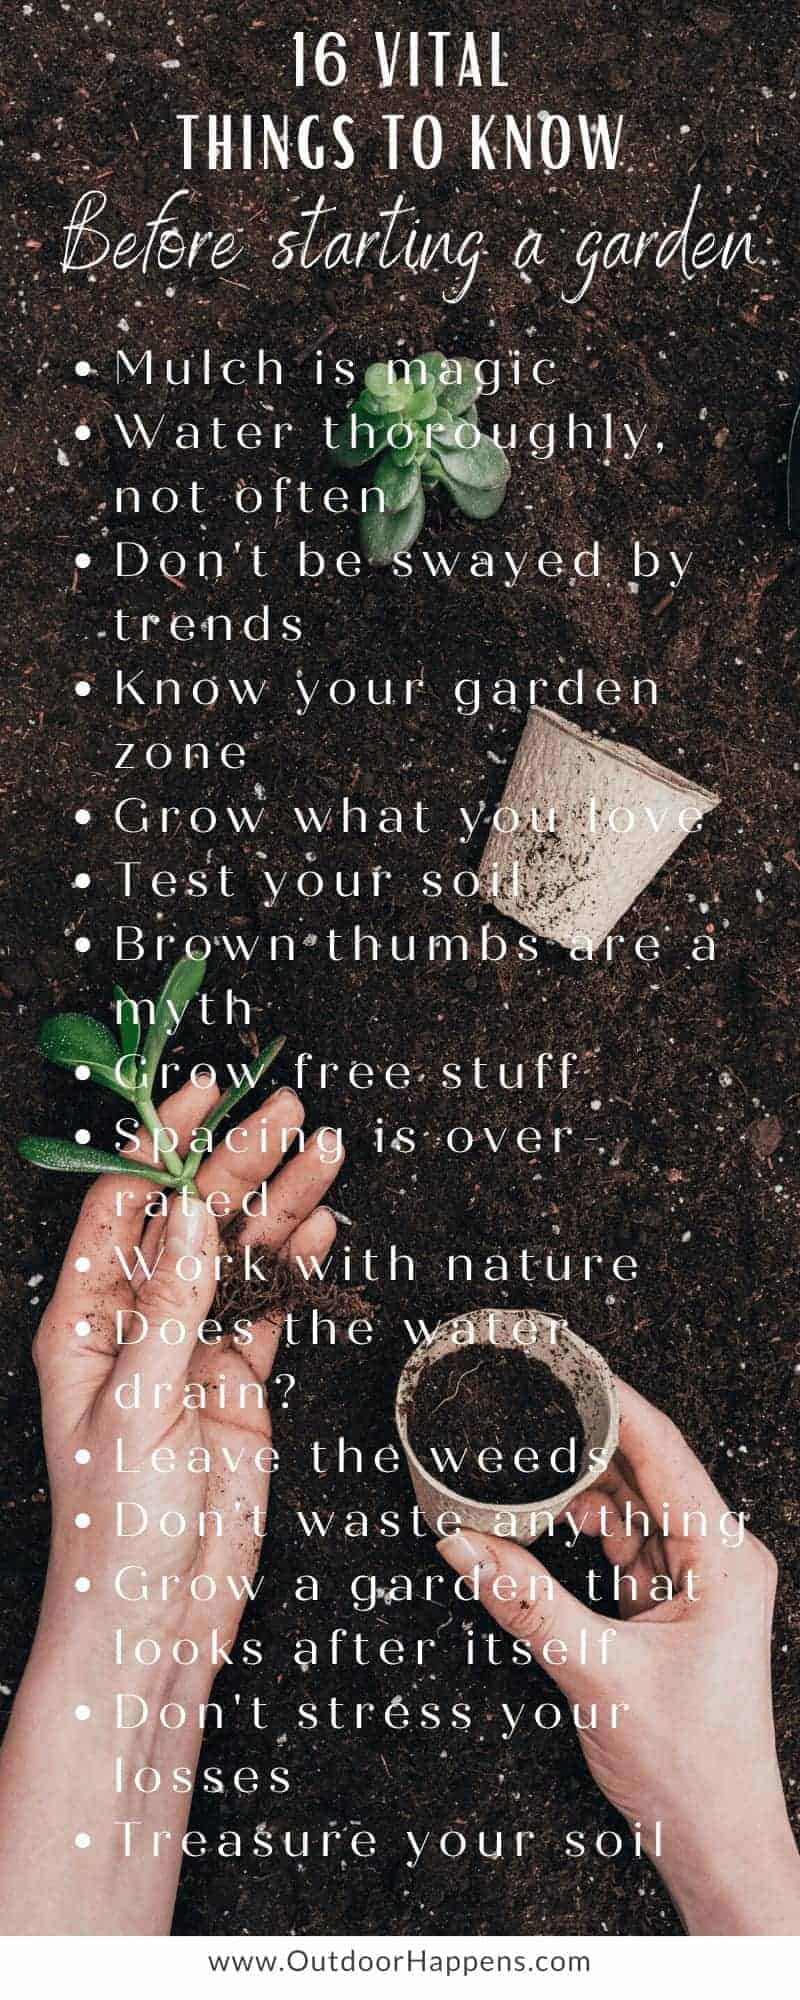 things-to-know-before-starting-garden